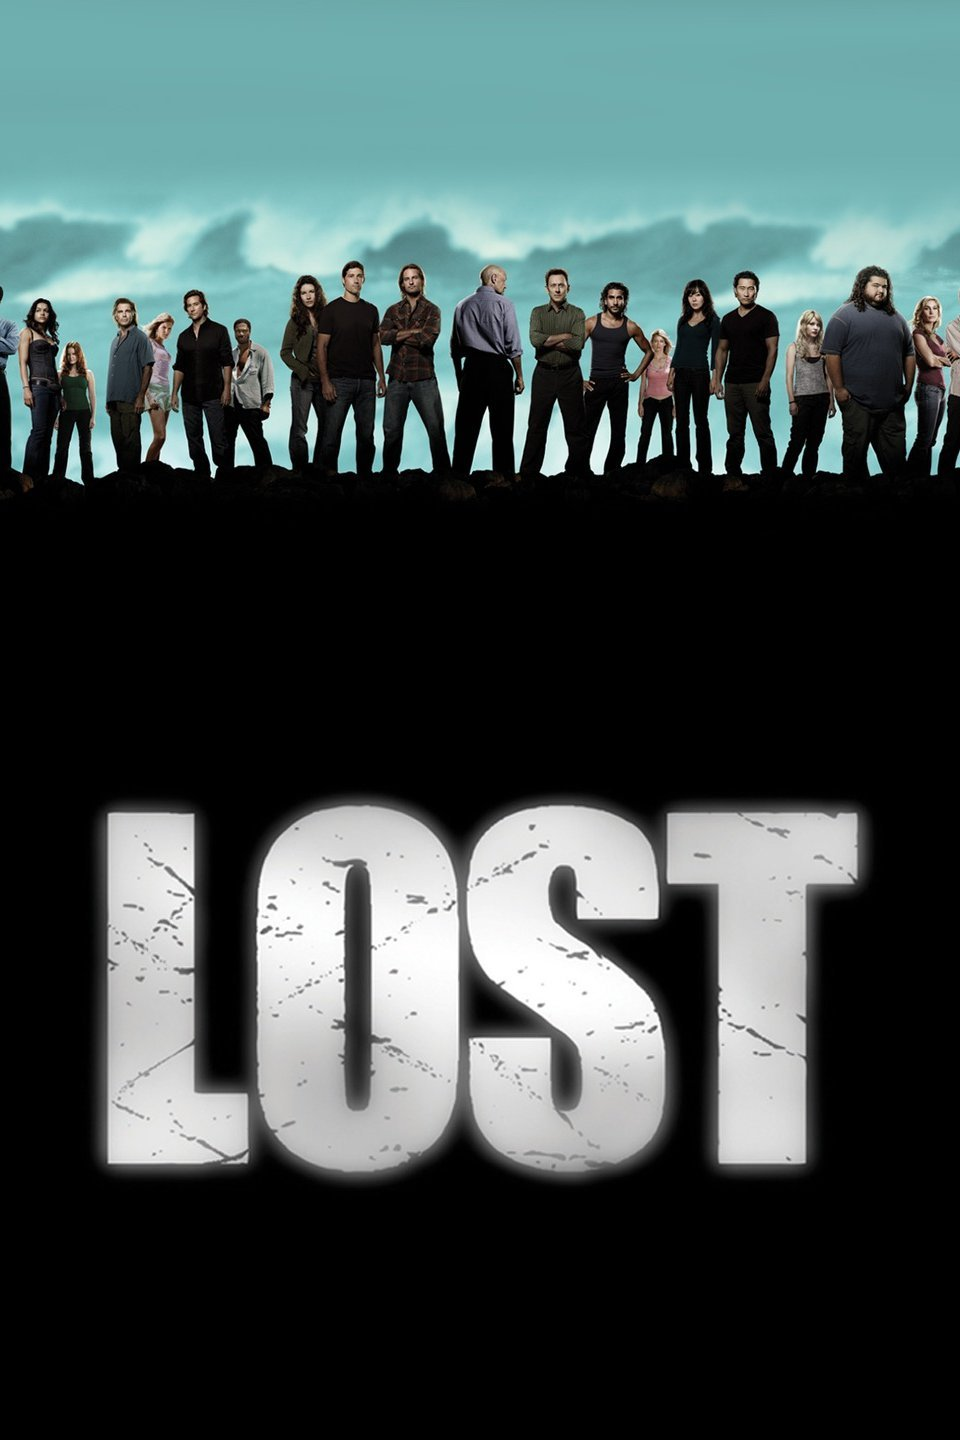 Lost Season 1 Download Complete 480p HDTV